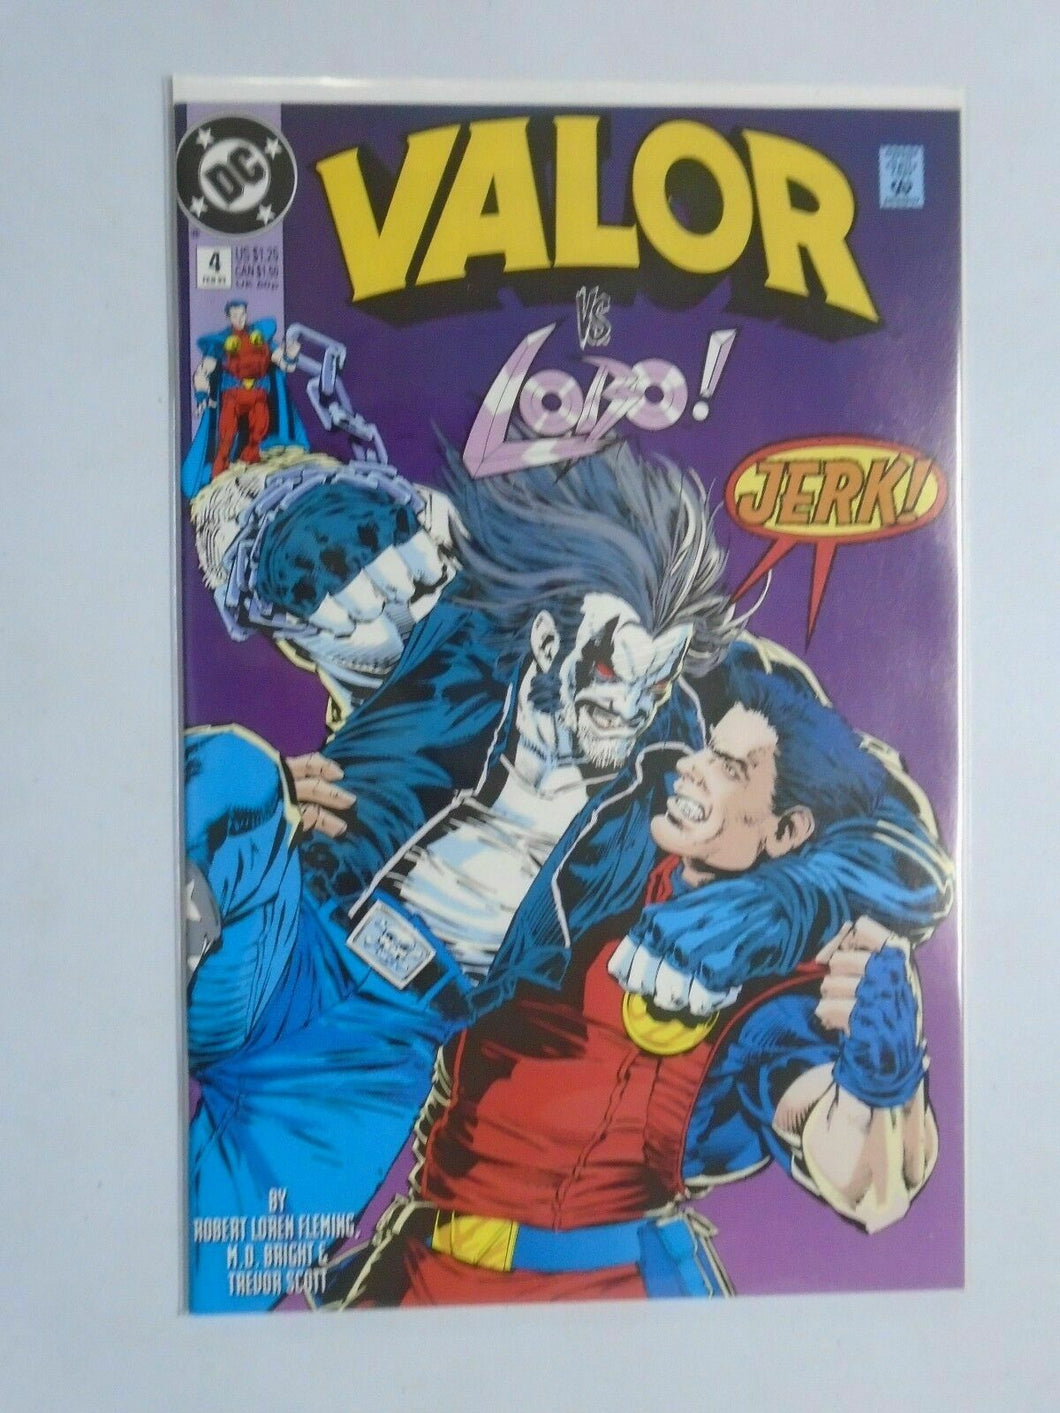 Valor (1992 DC) #4 - 8.0 VF - 1993